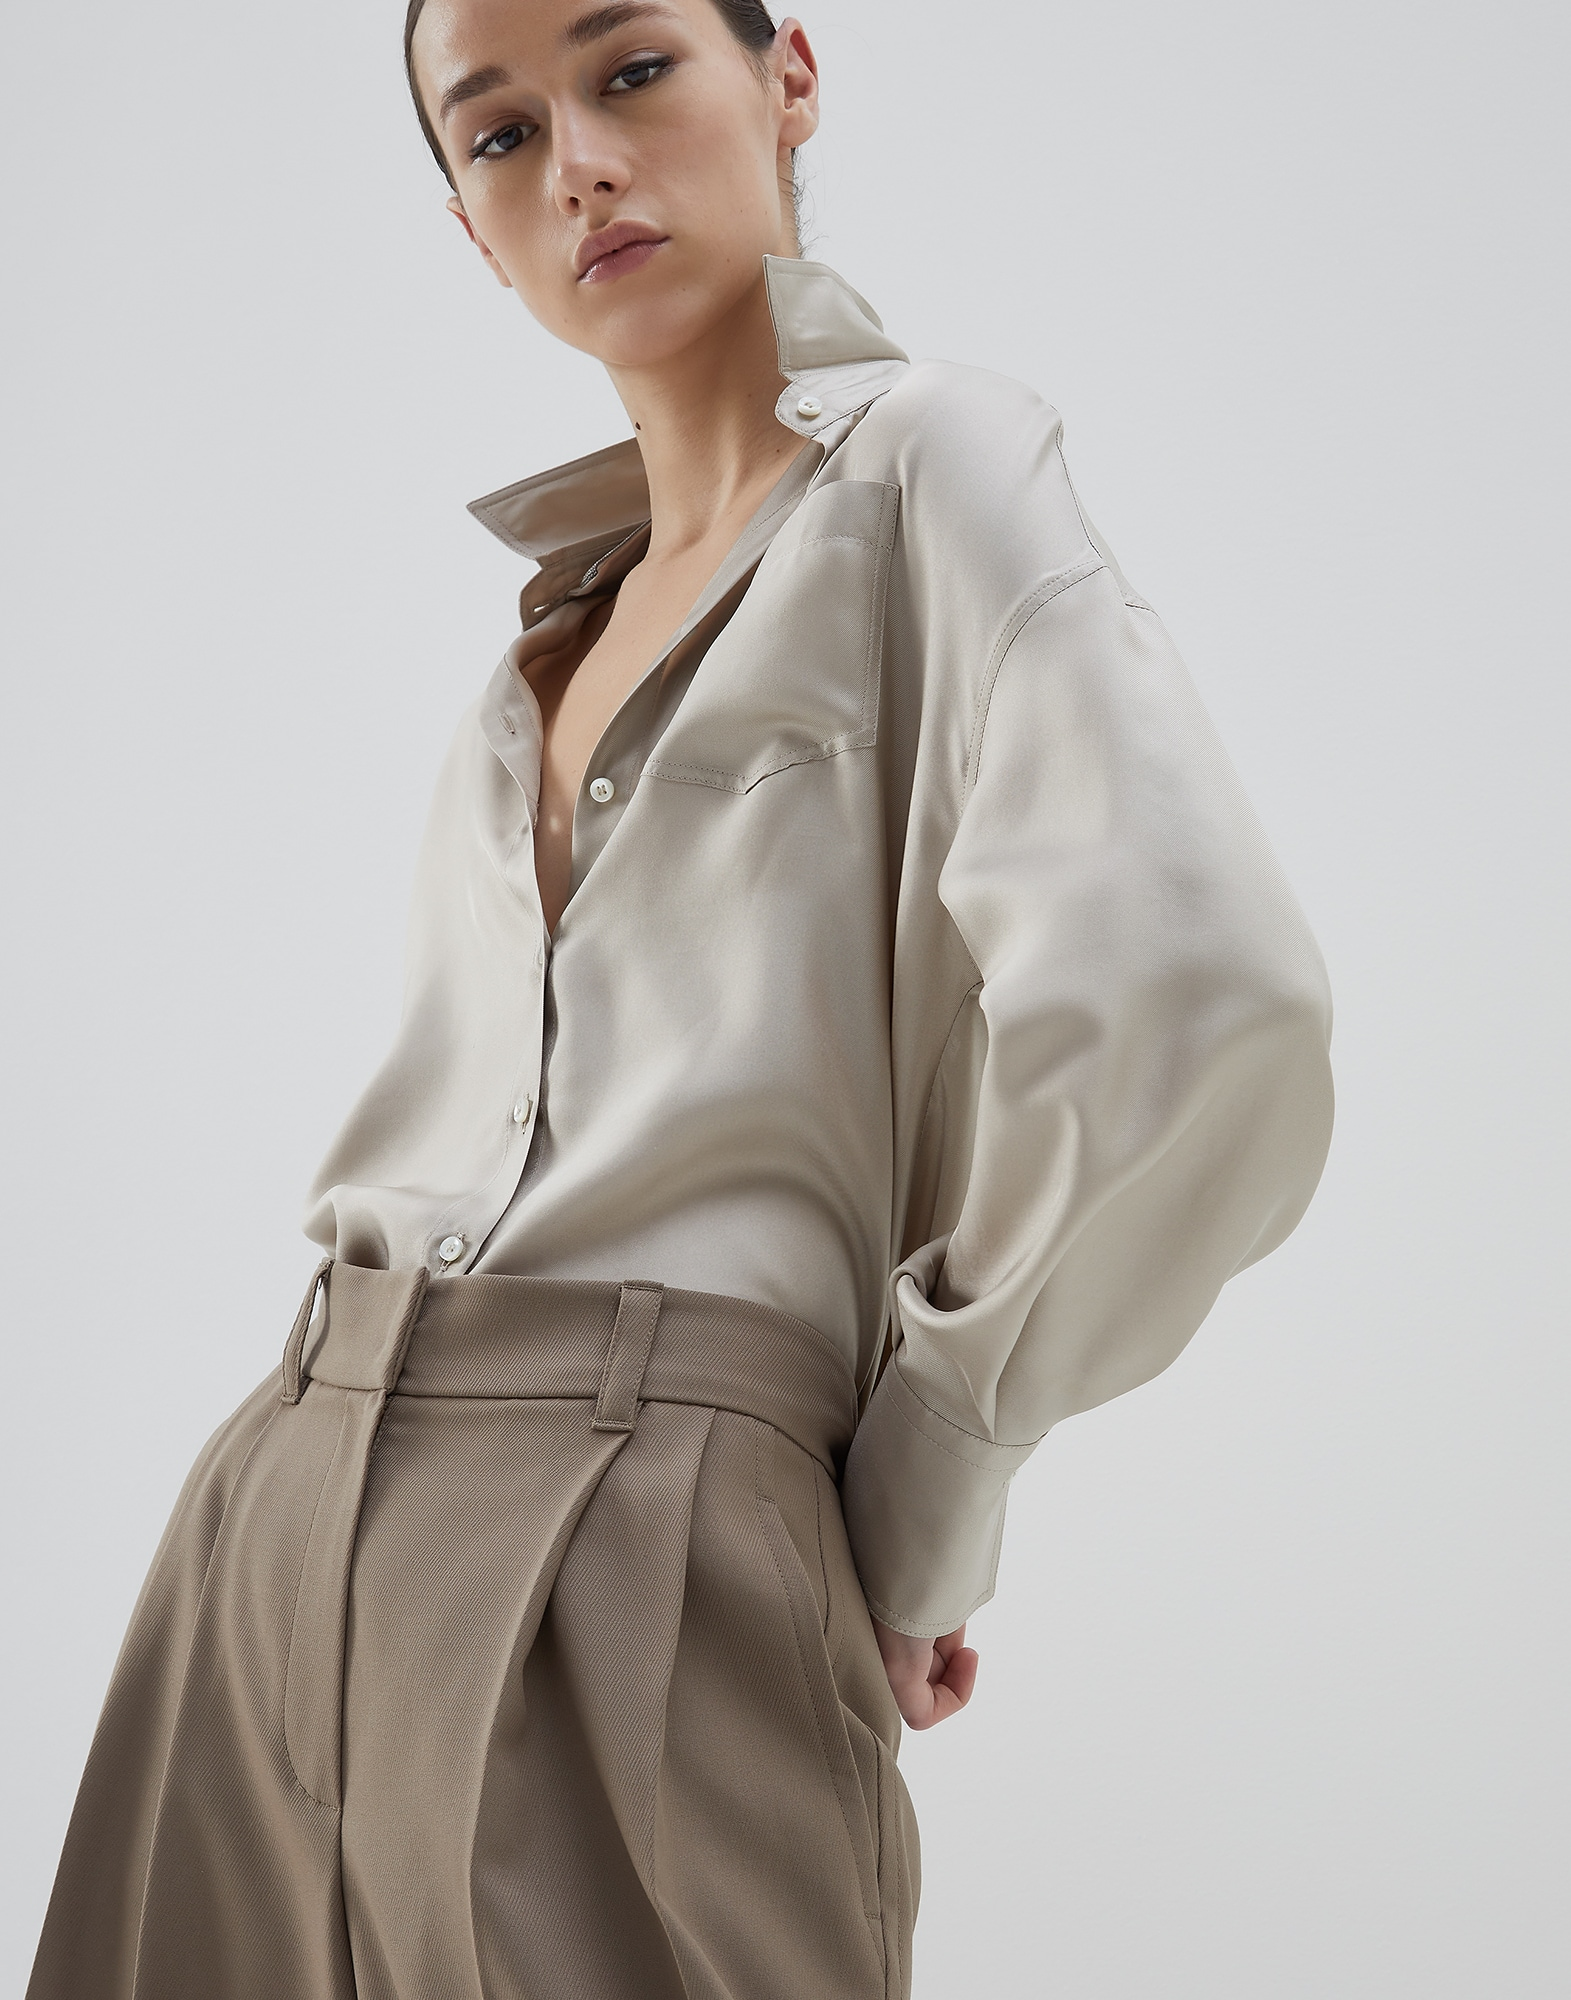 Silk Shirt Cool Beige Woman 0 - Brunello Cucinelli